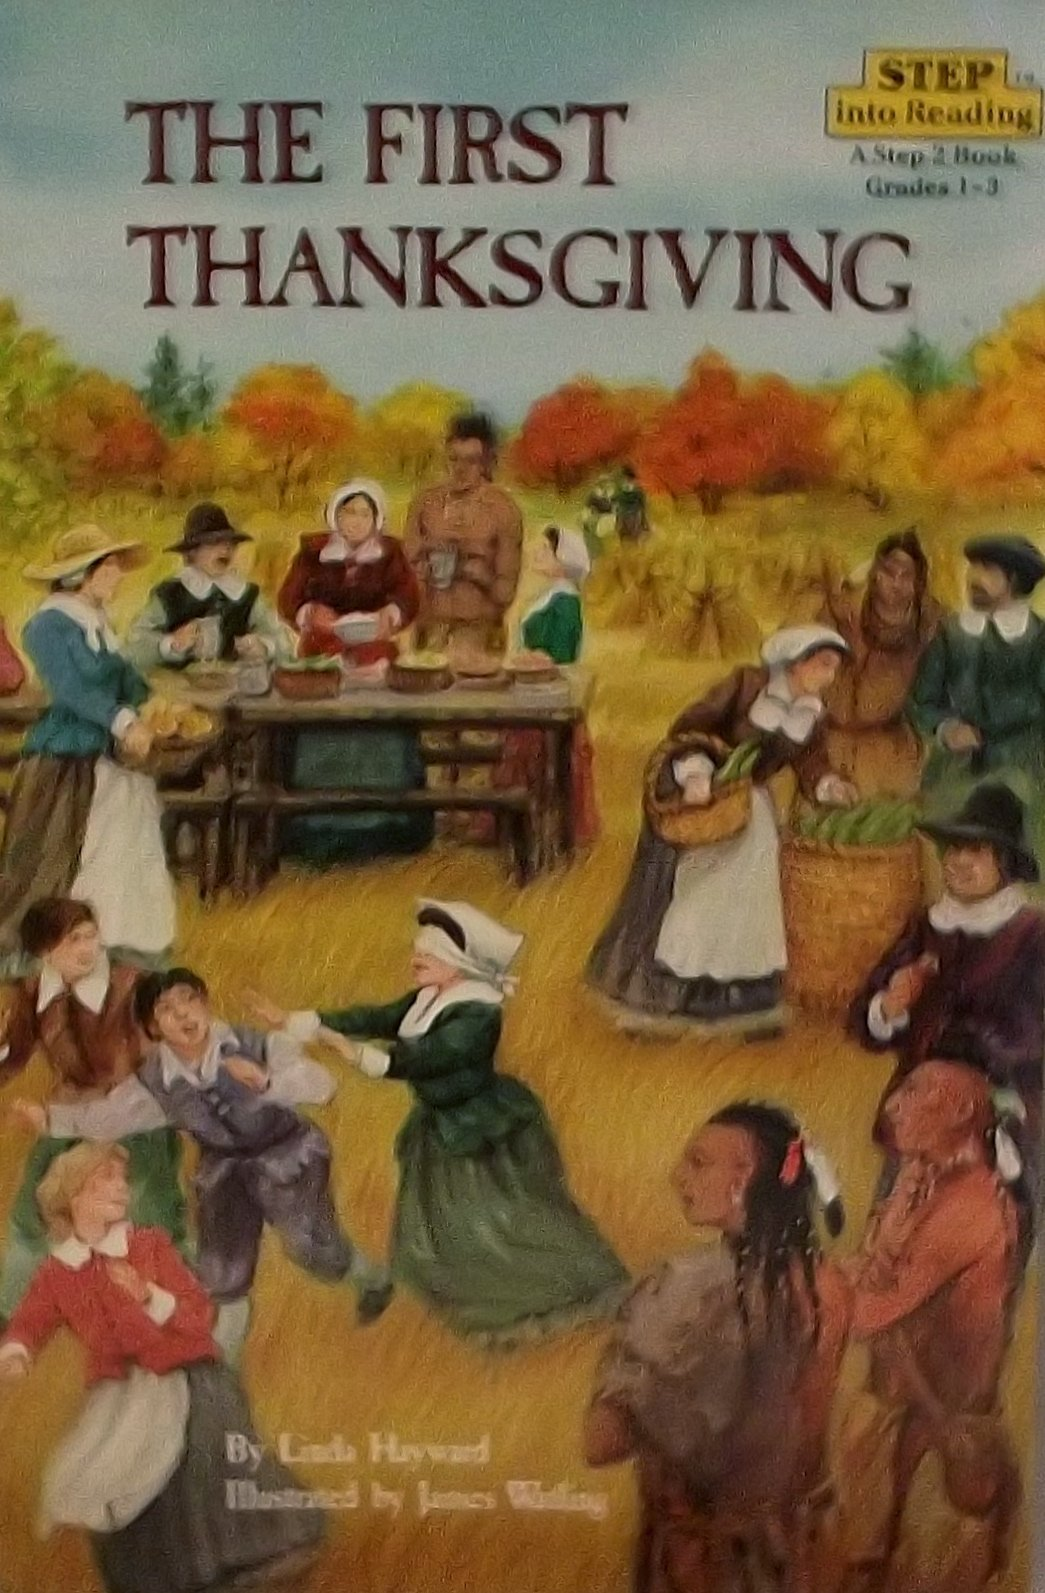 The First Thanksgiving (Step Into Reading: Step 2) Linda Hayward